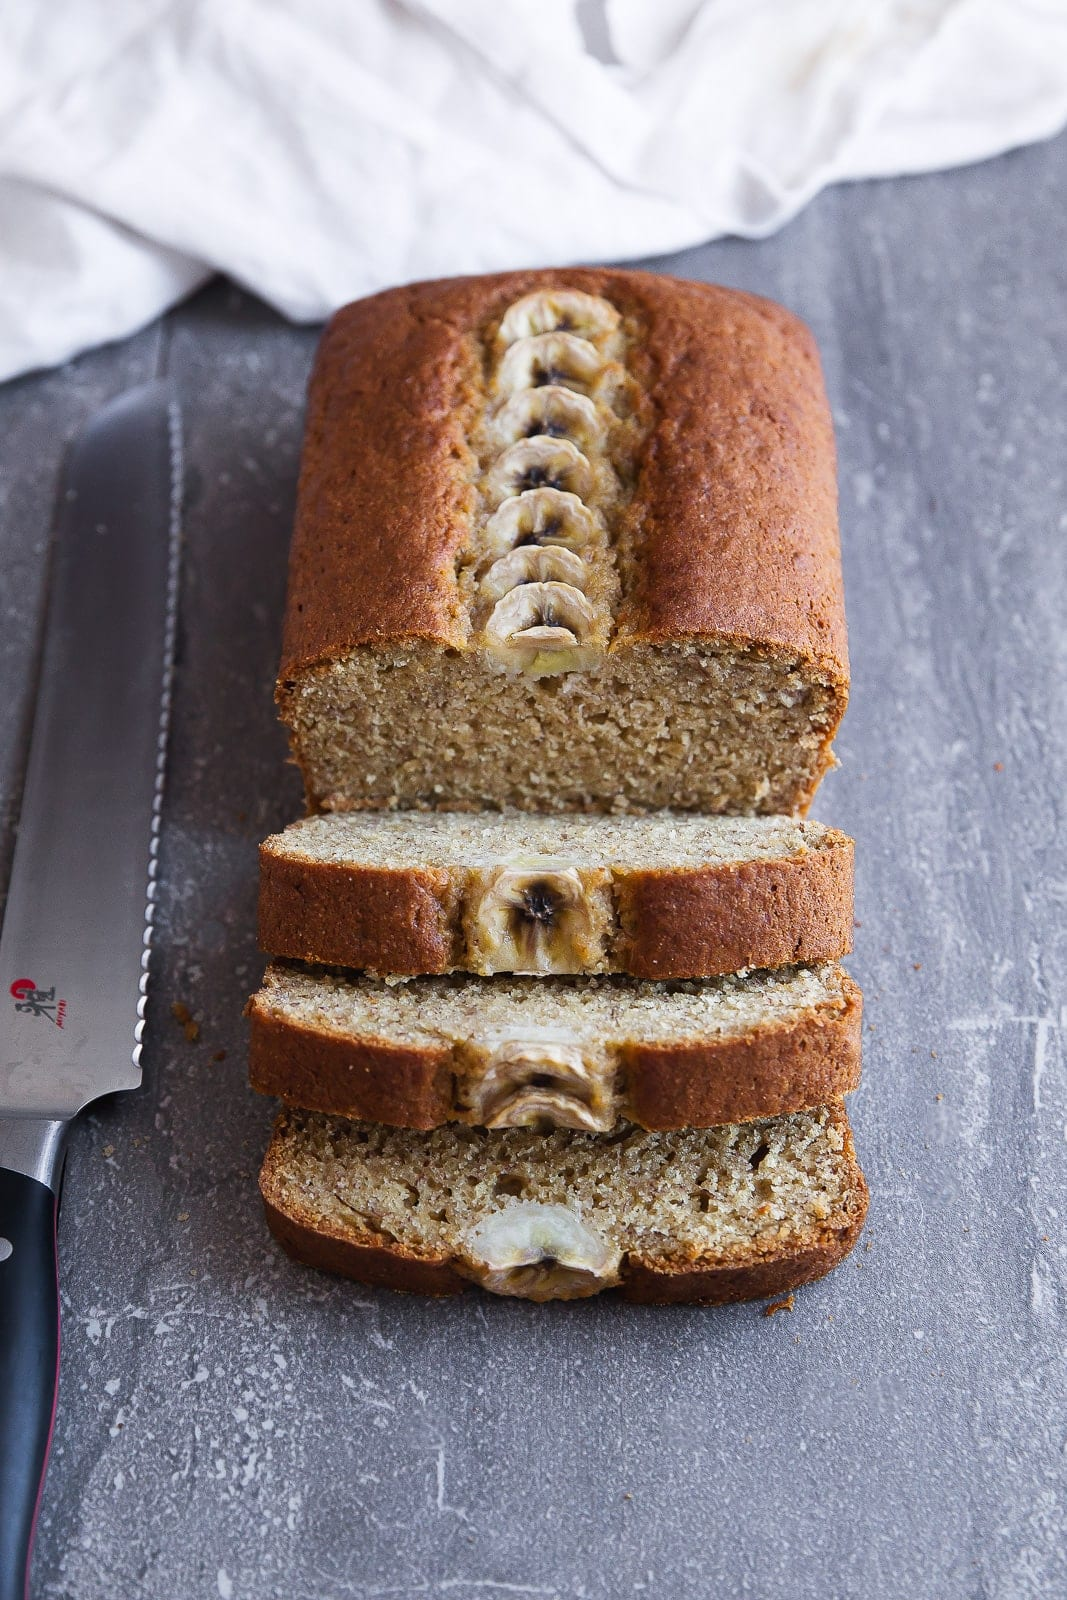 A crowd-pleasing favorite gets a flavorful update with Brown Butter Banana Bread!